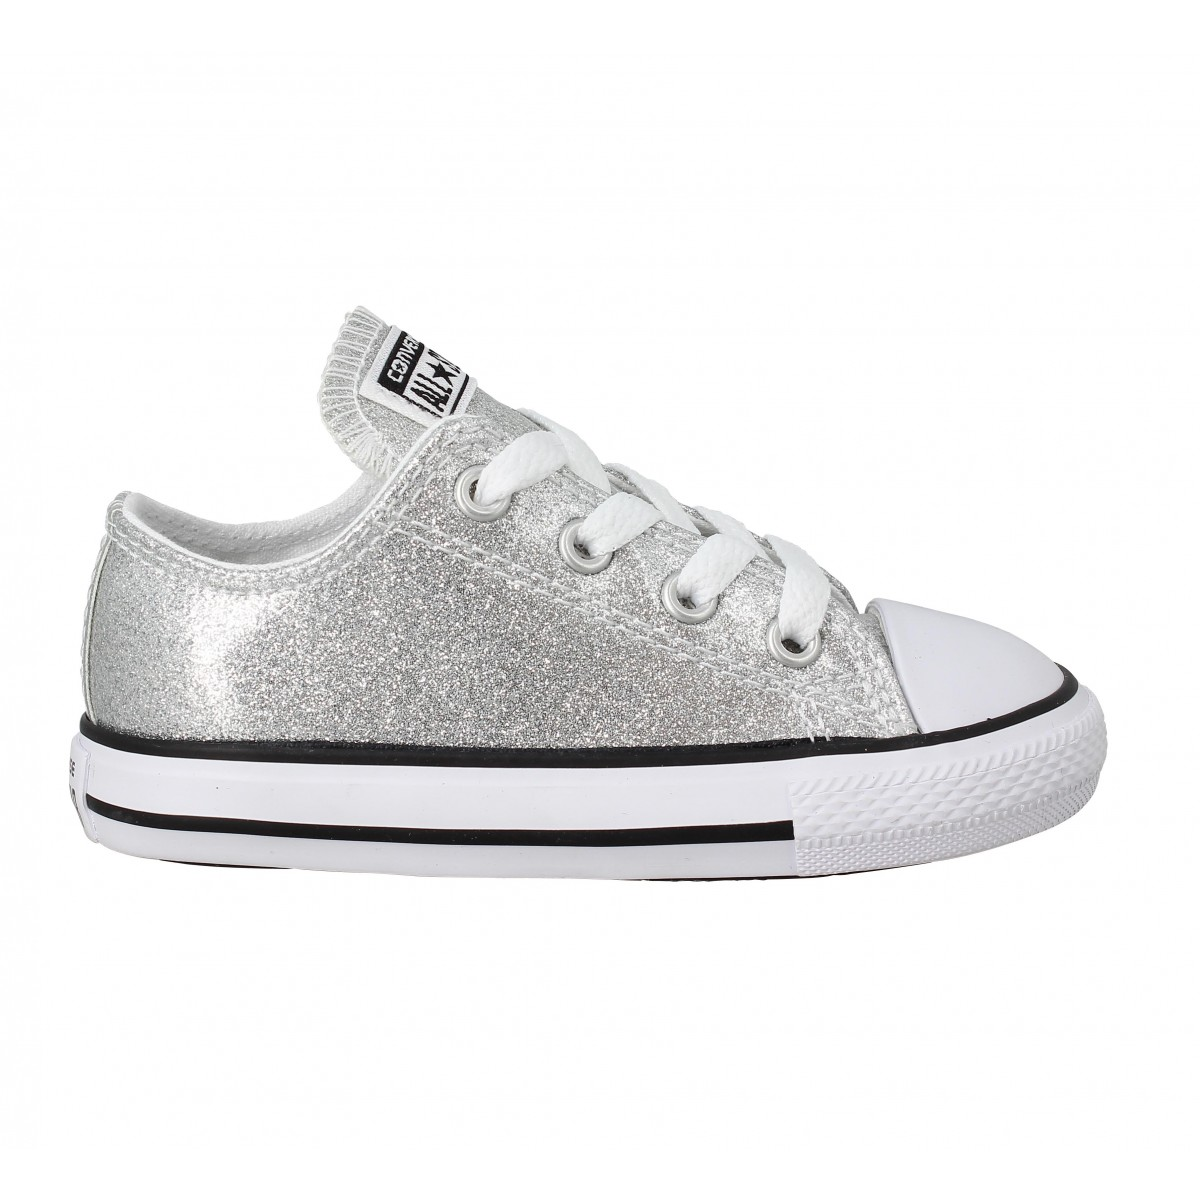 CONVERSE ALL STAR Sneakers & Tennis basses enfant. 7xLKM